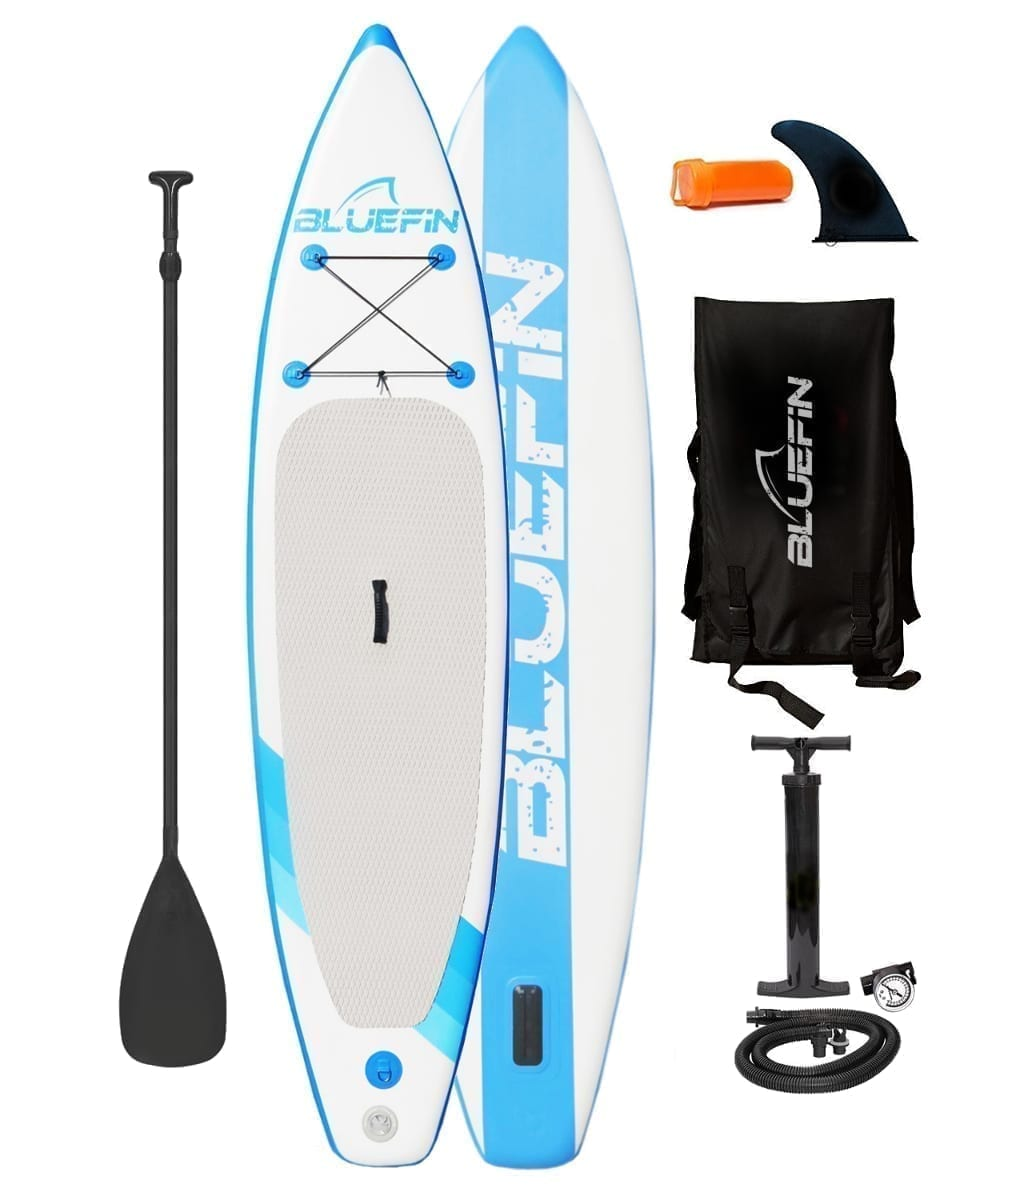 Bluefin inflatable stand up paddle board equipment